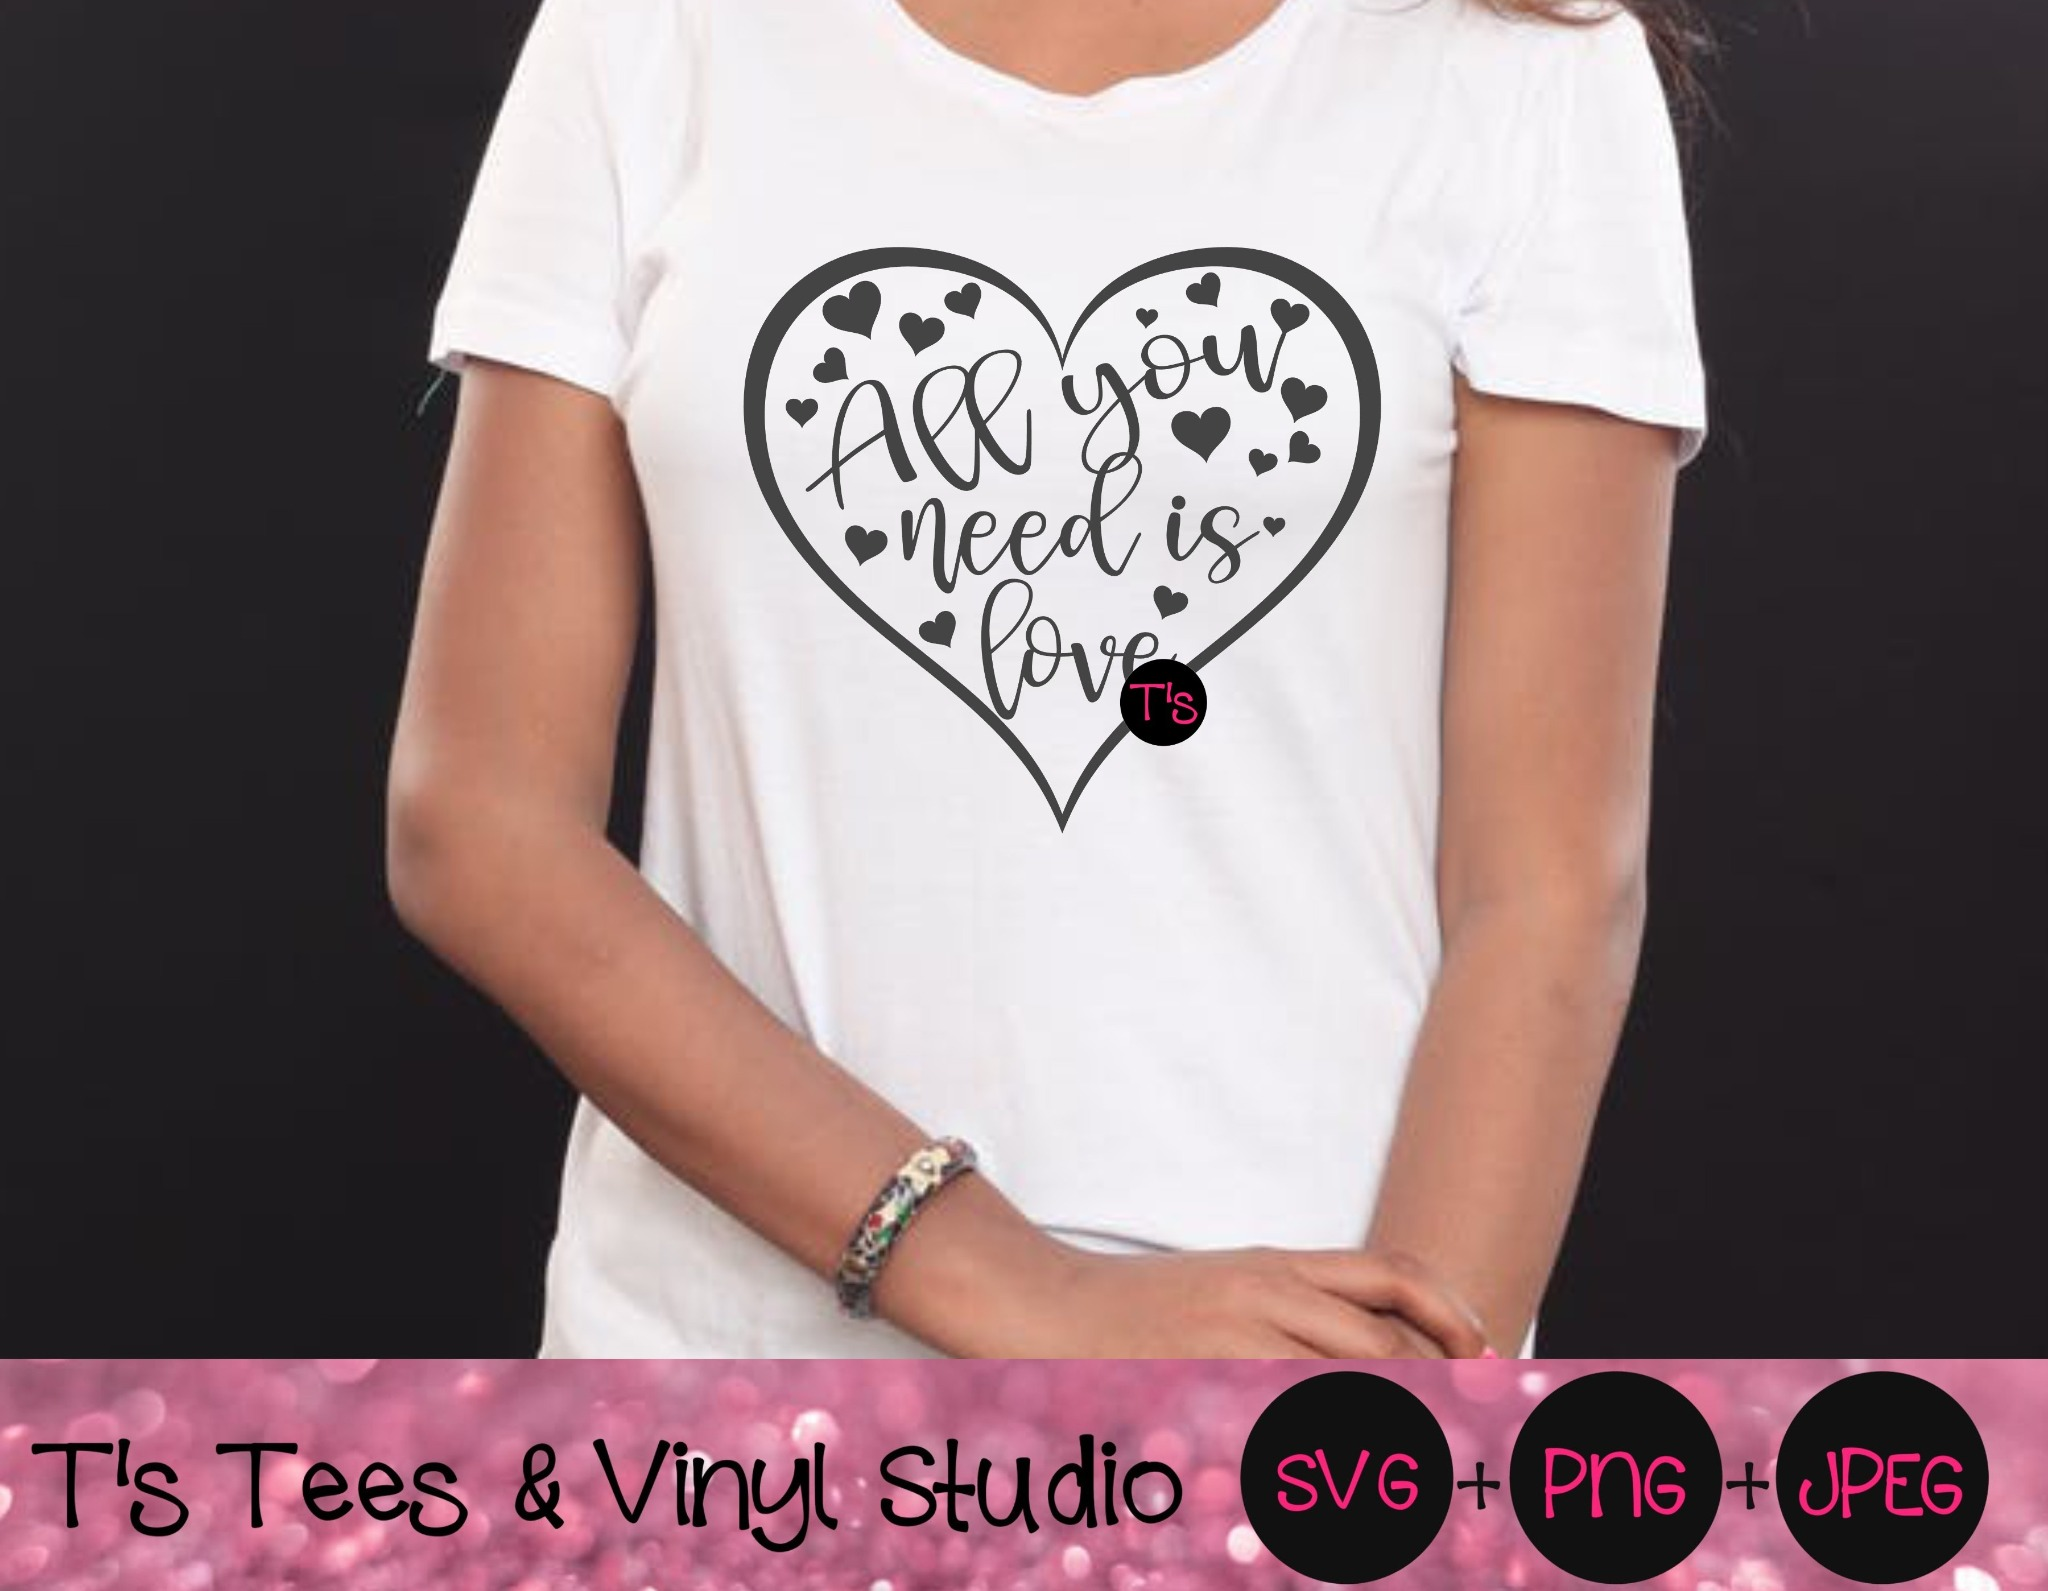 Love Svg, In Love Svg, All You Need Is Love, Love Conquers All, Engagement, Wedding, Hearts Svg, Lov